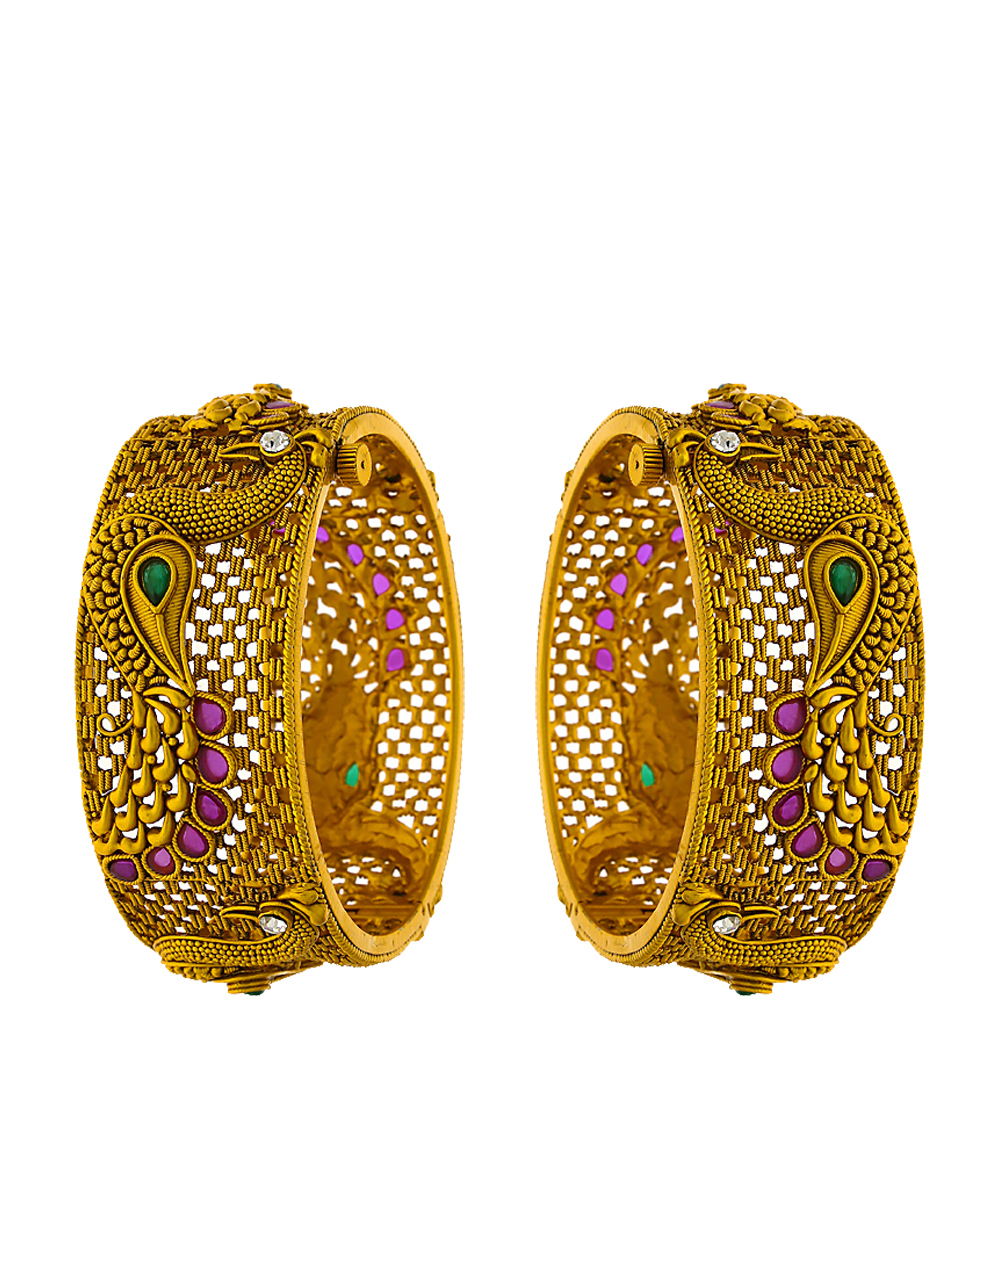 Peacock design studded with pink stone traditional bangles for women